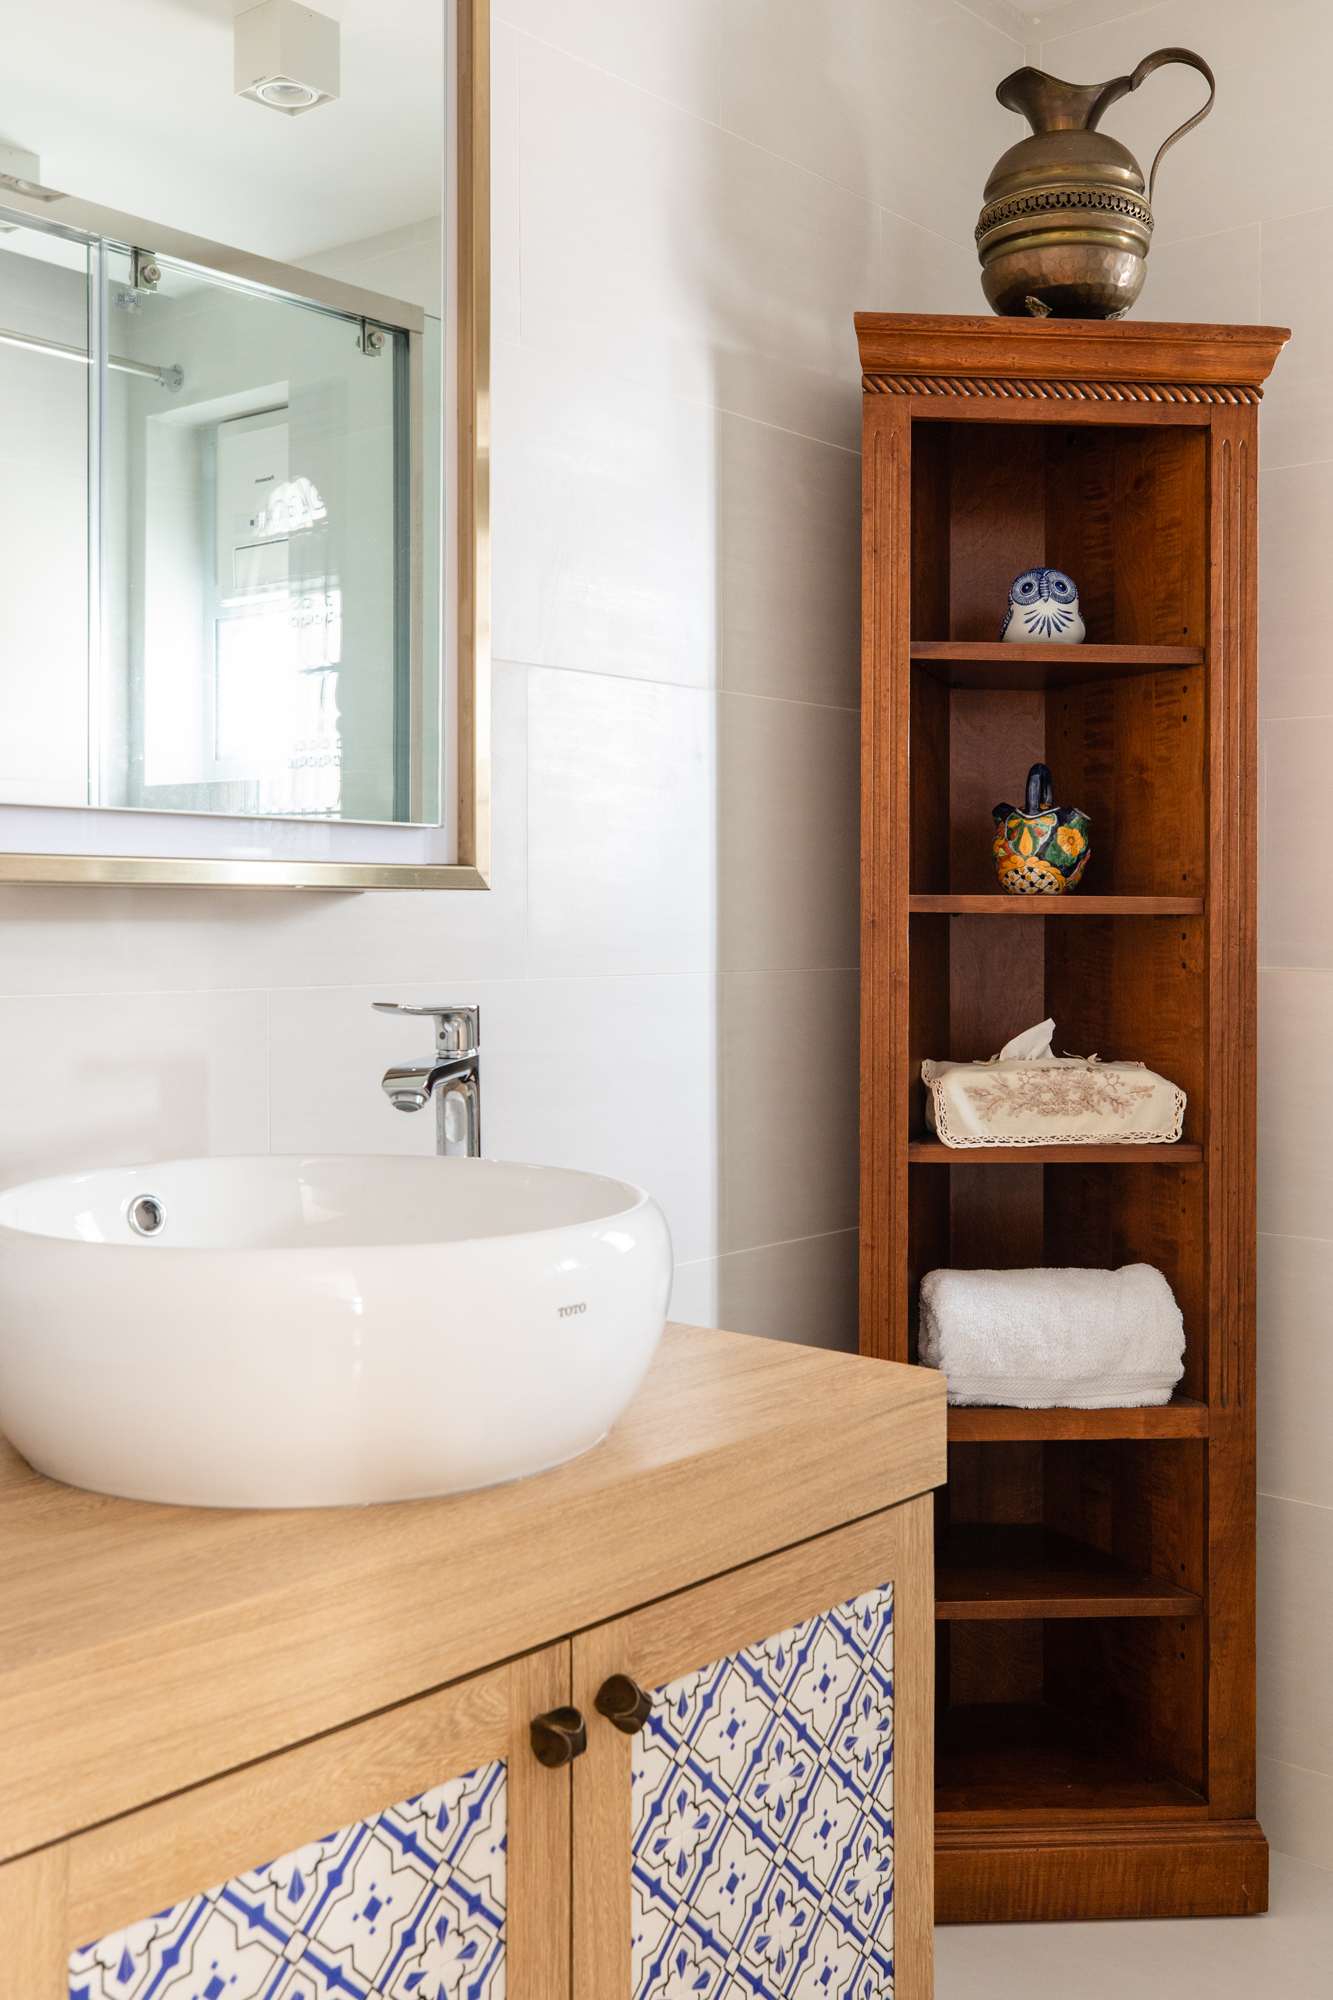 Bathroom details from homeowner's travels • Tracy Wong Photography